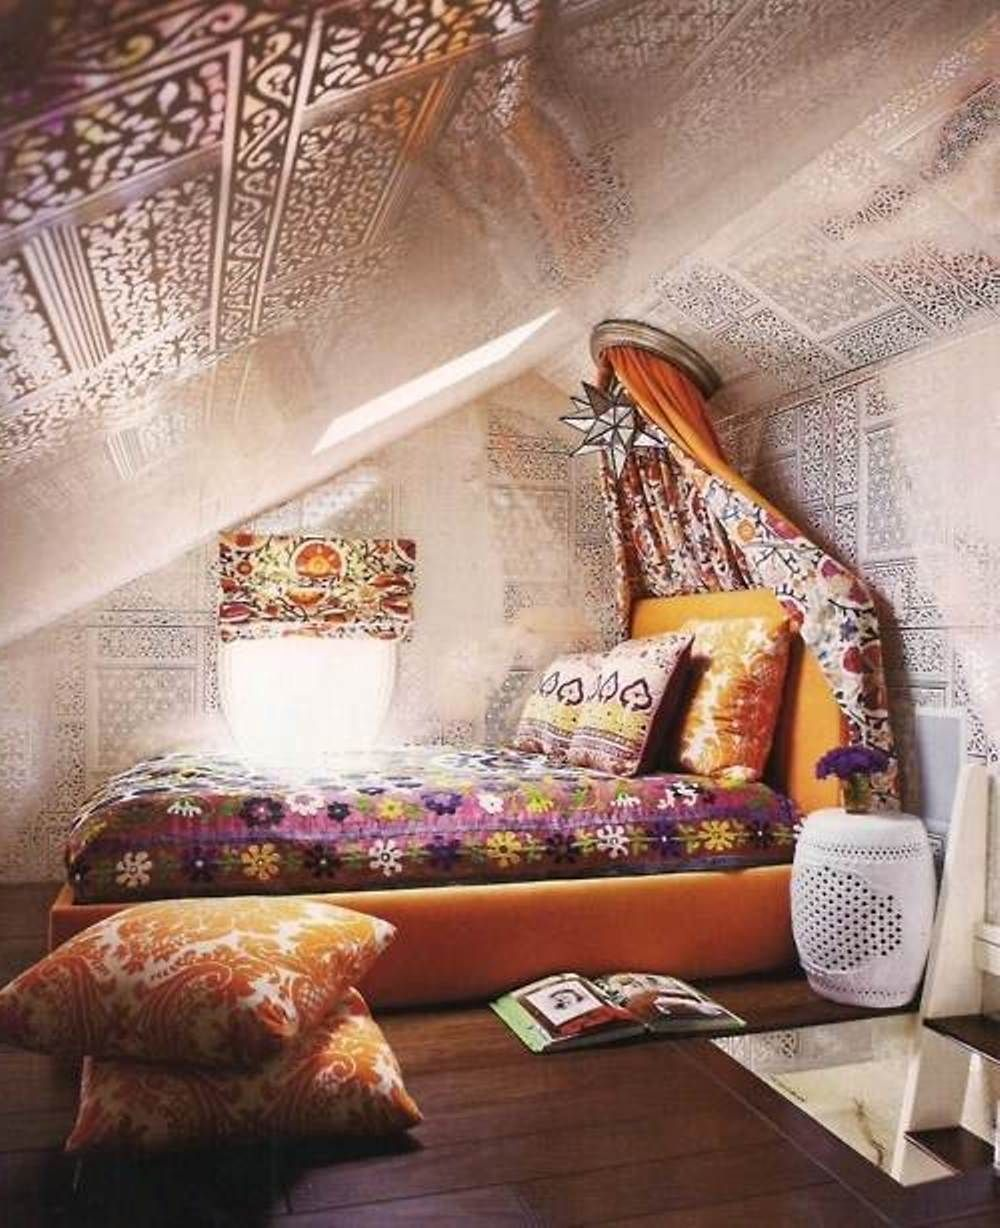 Best bohemian bedroom ideas and design cozy nook modern